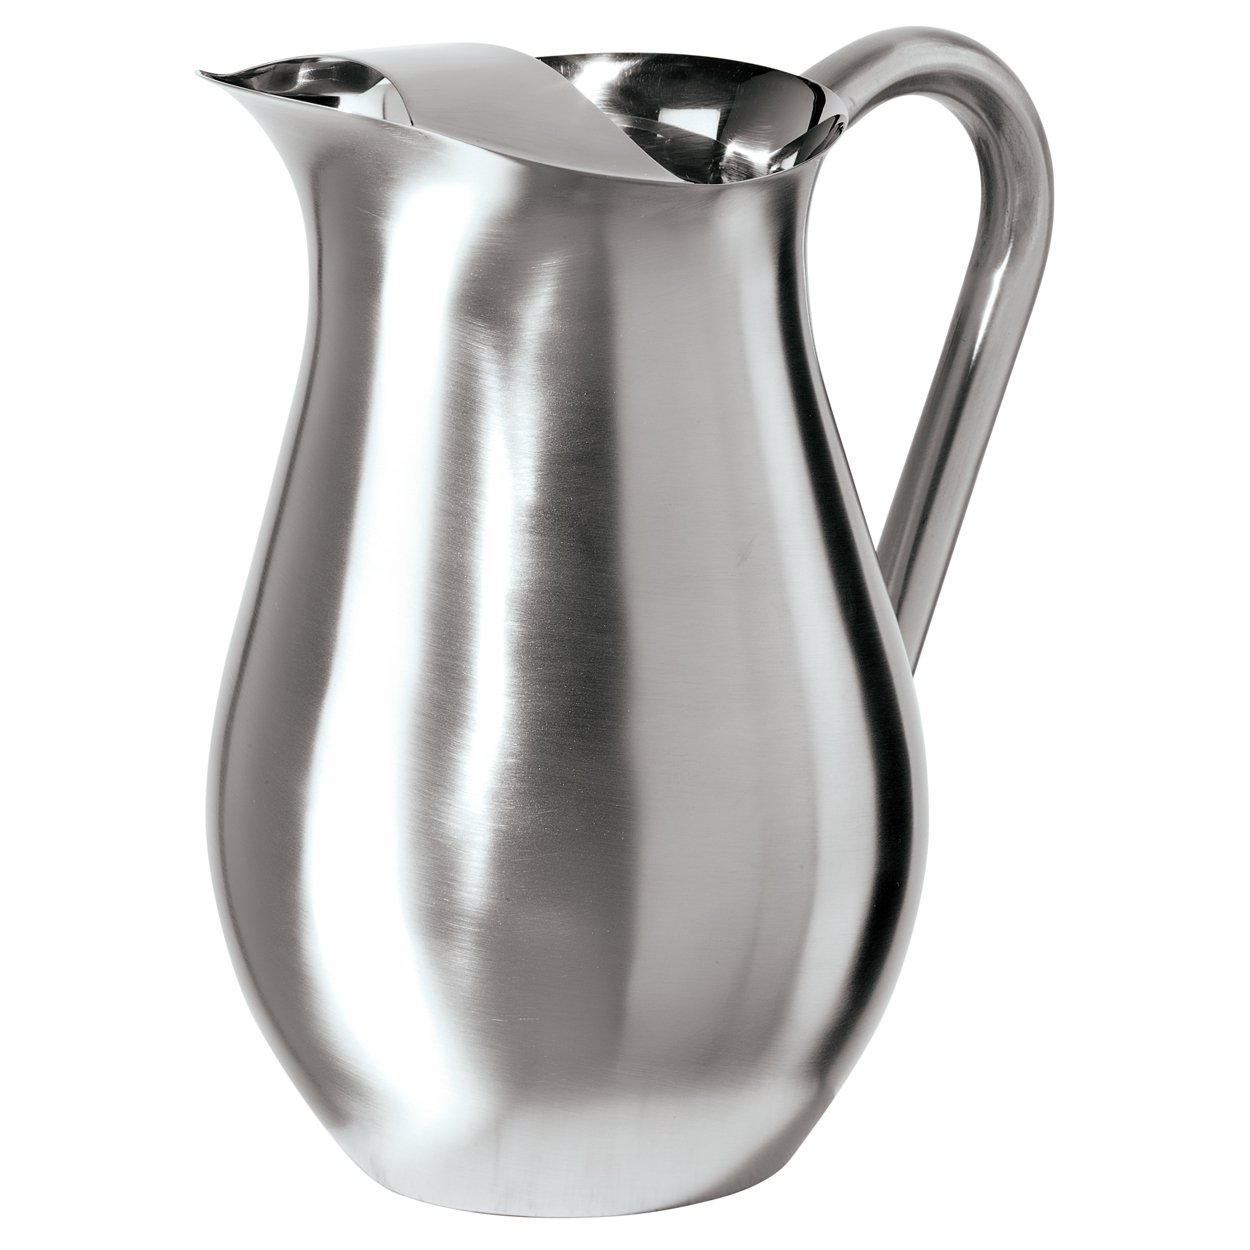 amazoncom  oggi stainless steel pitcher with ice guard  liter  - amazoncom  oggi stainless steel pitcher with ice guard  liter oggi stainlesssteel pitcher carafes  pitchers